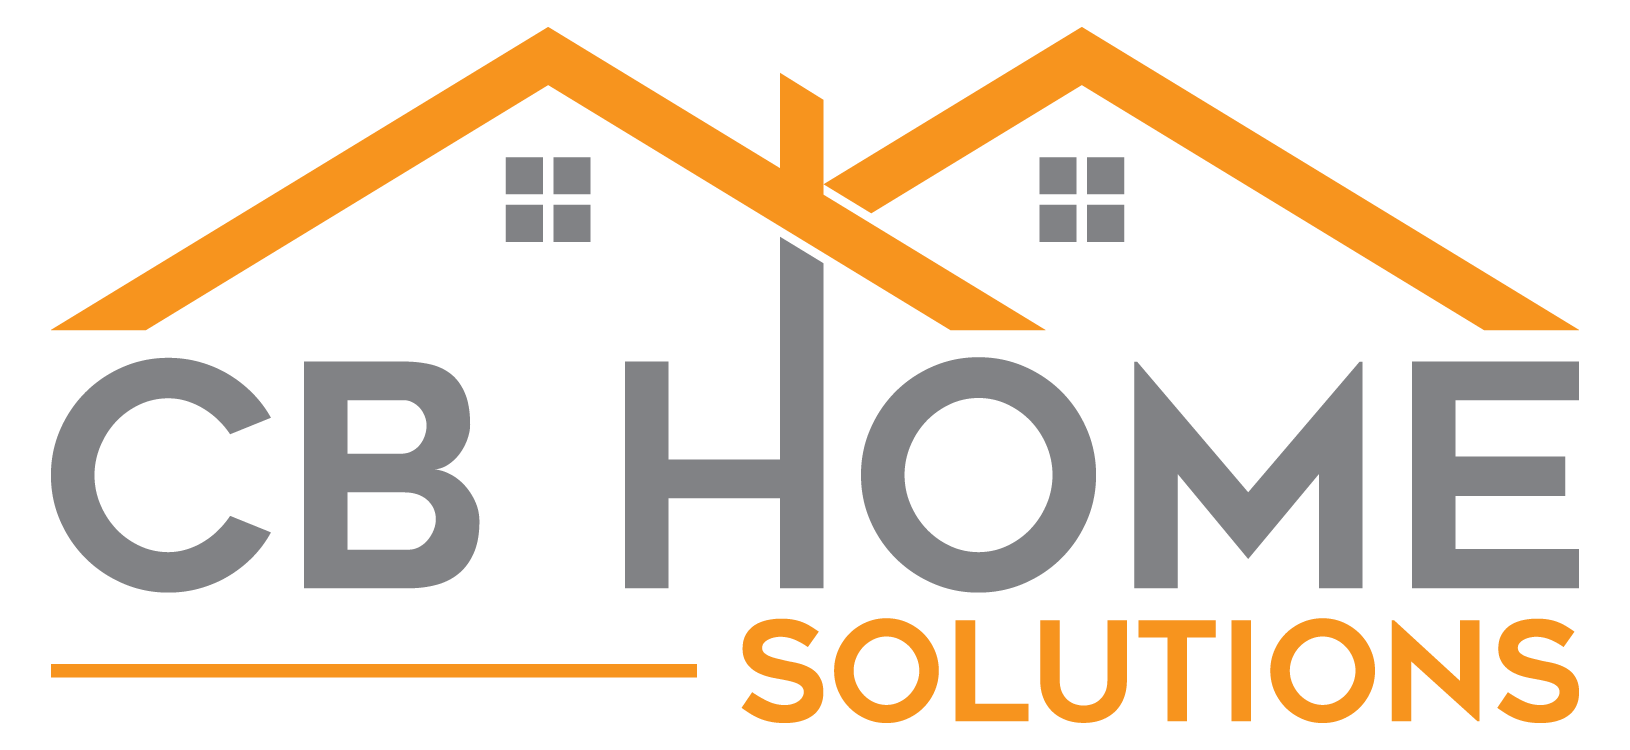 Milwaukee House Buyers | CB Home Solutions, LLC logo